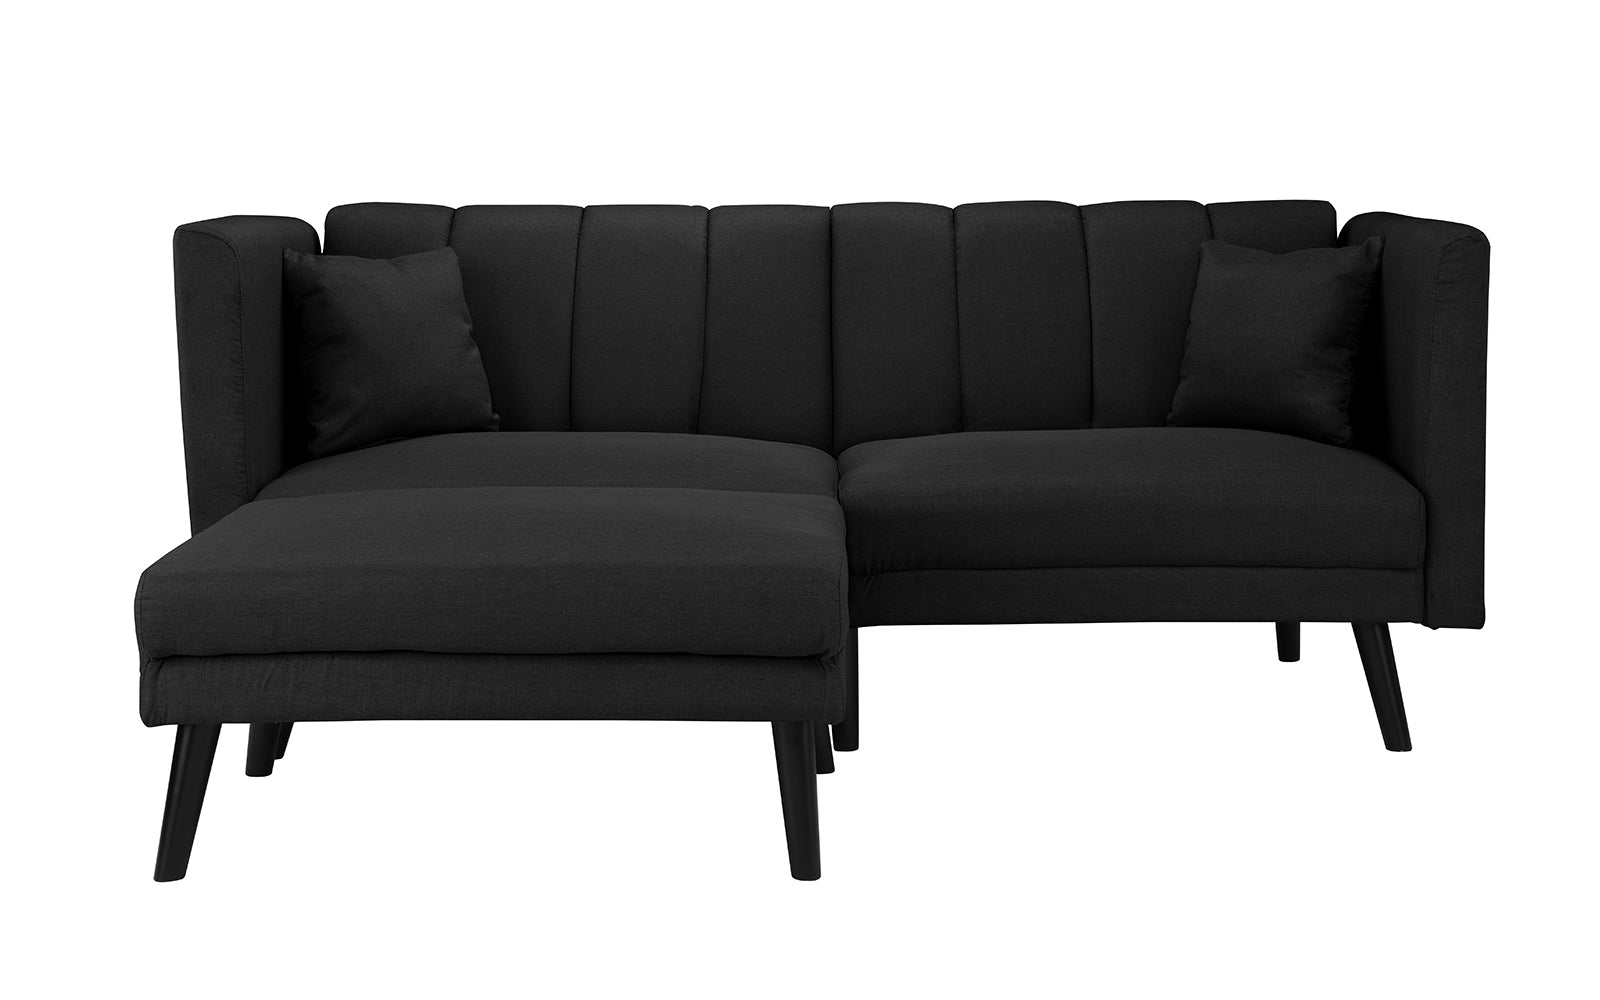 Buy Affordable Futons Online - 20+ Modern Styles for Sale ...